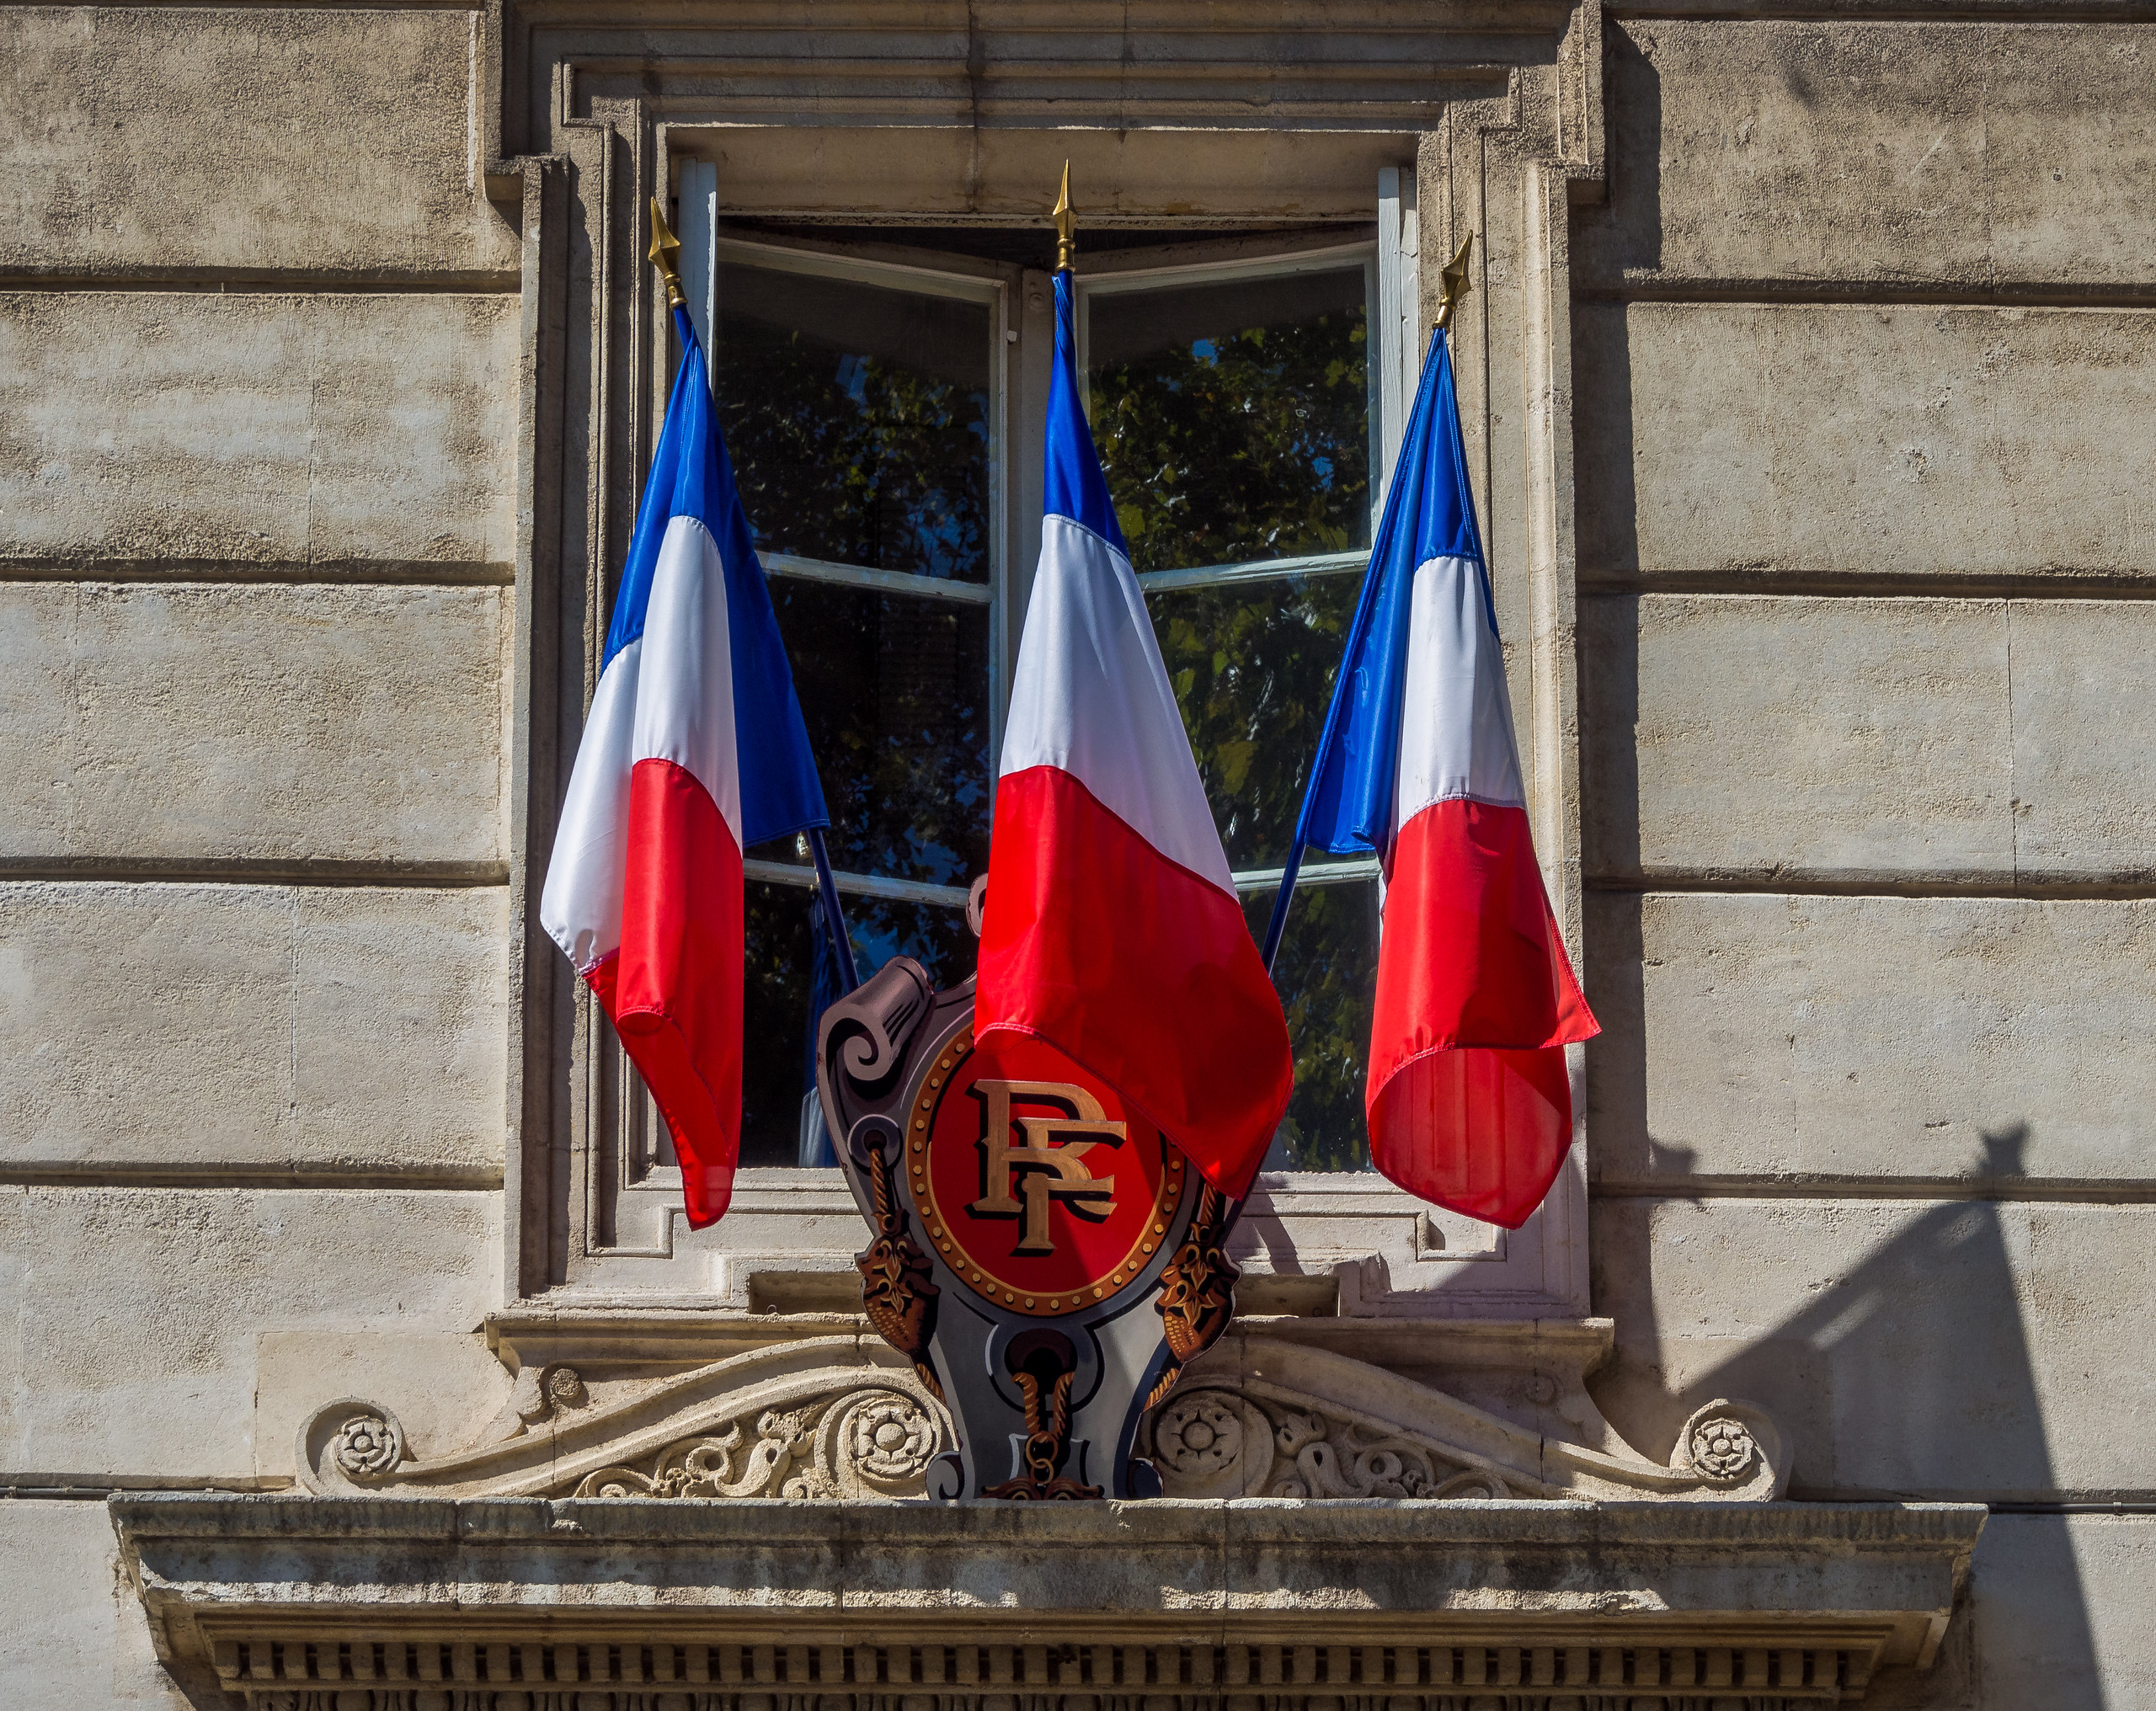 French flags outside the Avignon Town Hall.